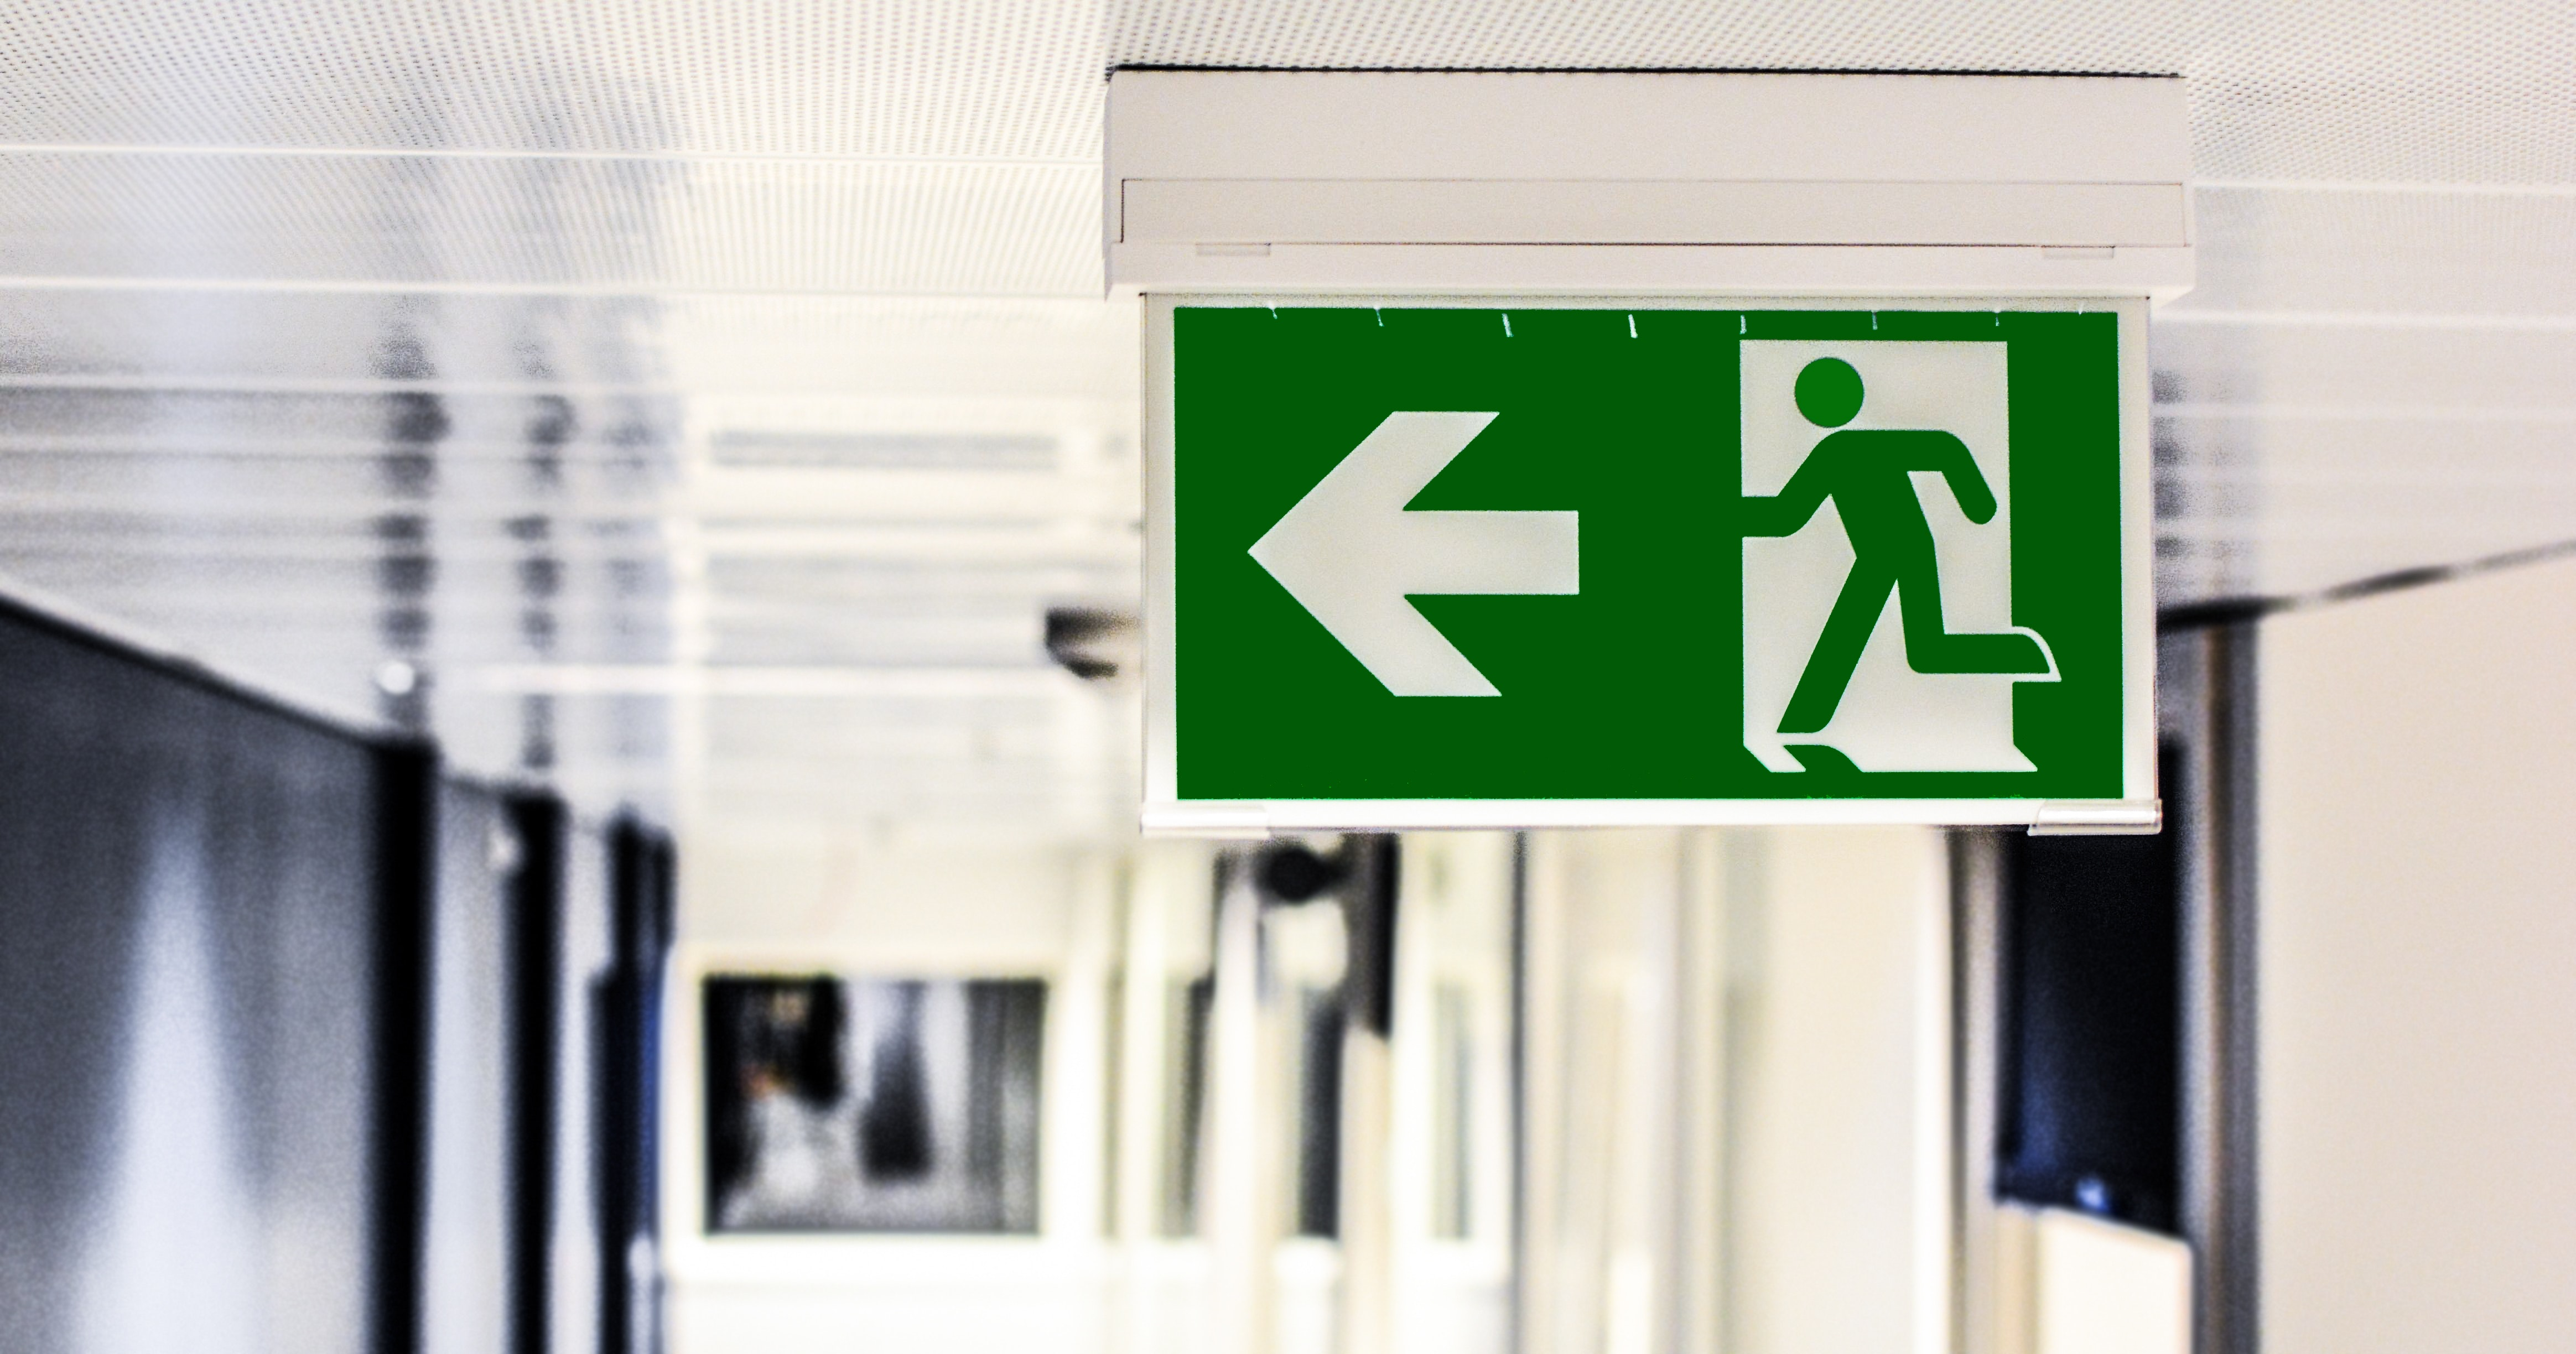 Motivate employees to follow workplace safety